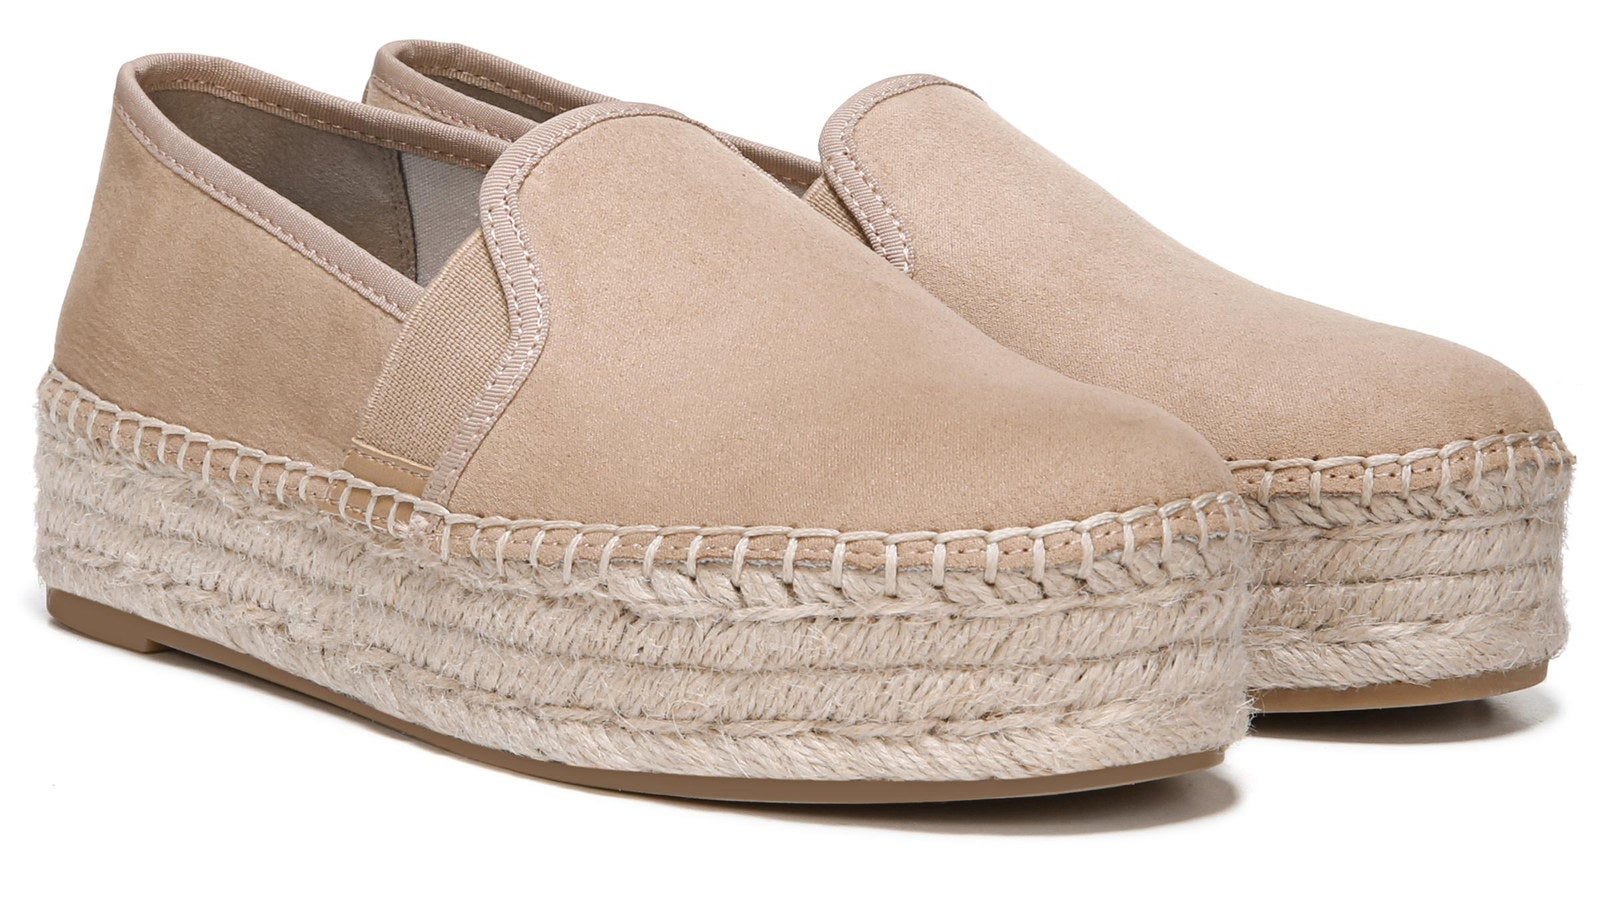 I Guarantee You Will Find Your New Favorite Pair Of Shoes In This Post